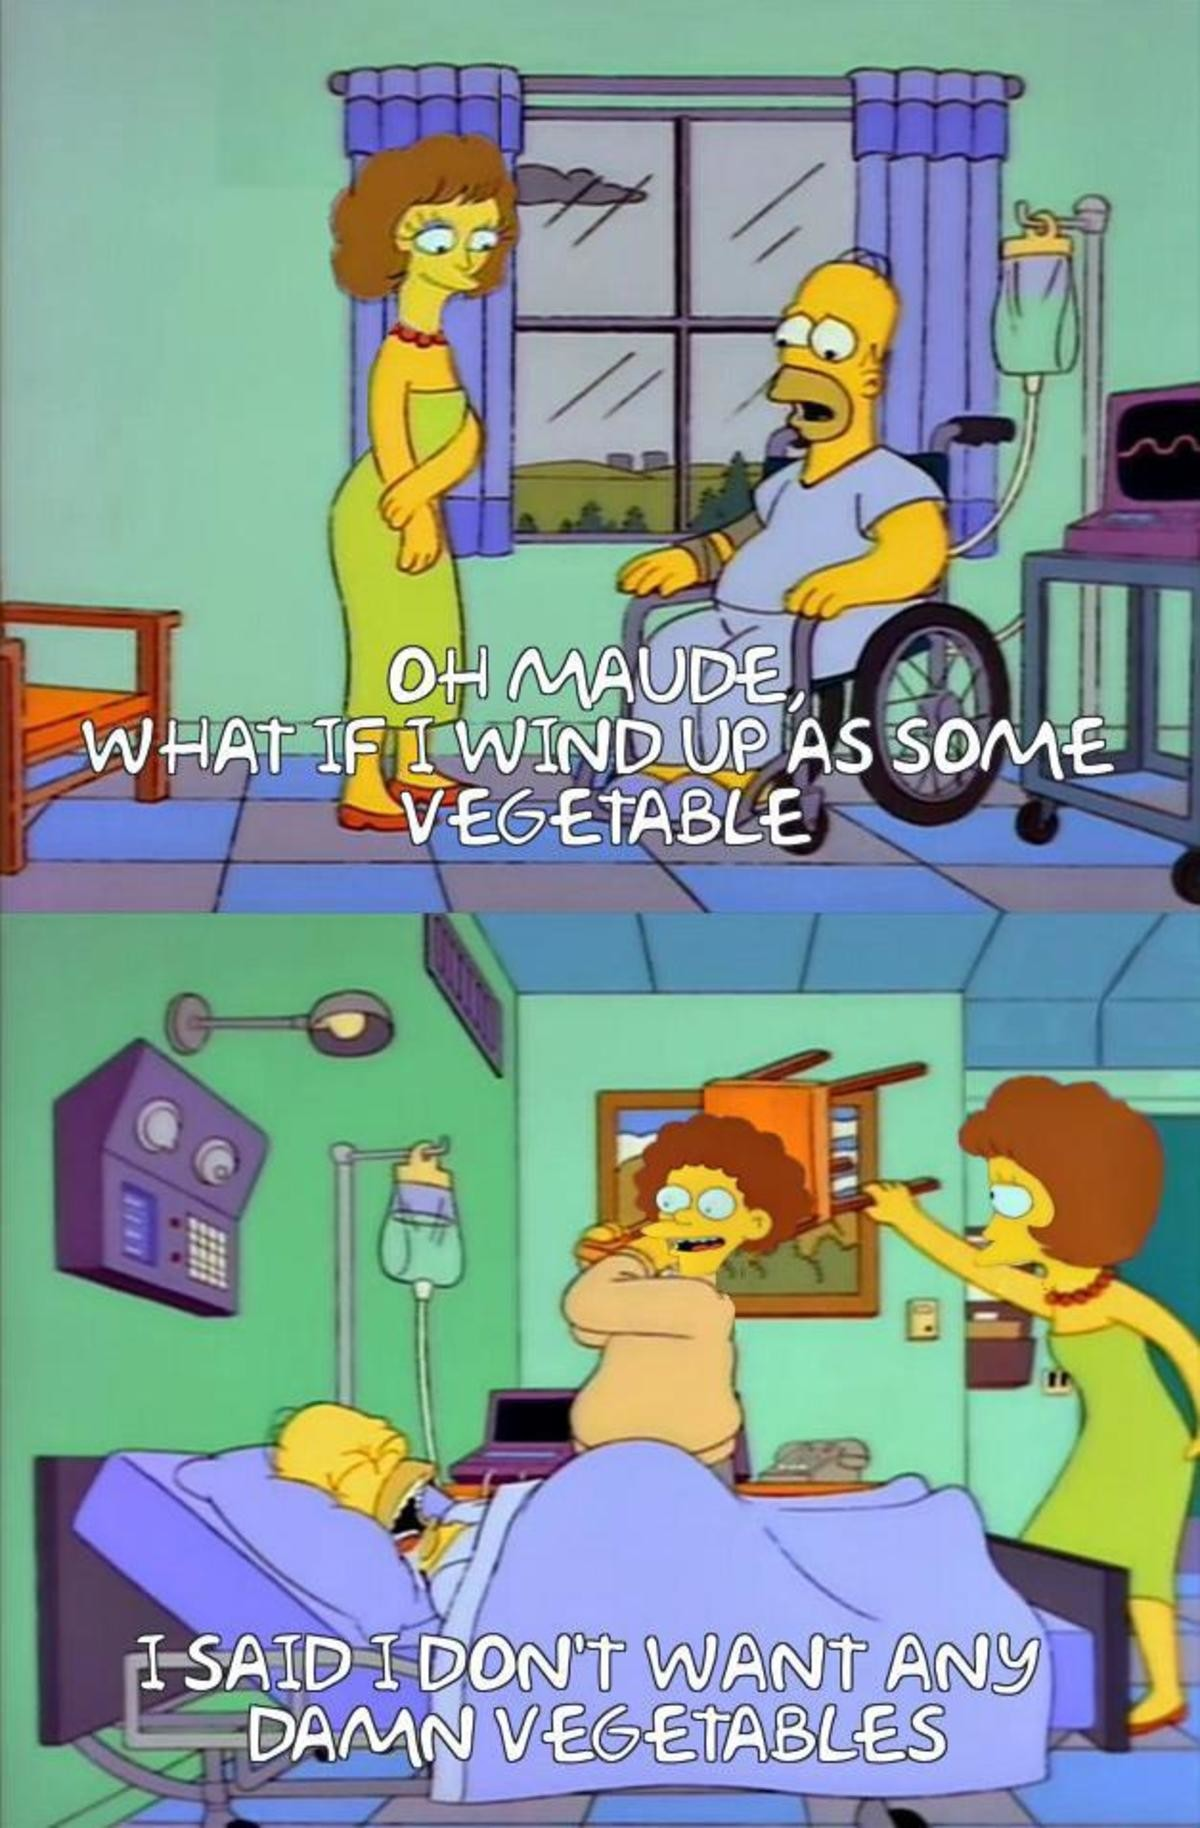 psychedelic purgatory exclusive Sparrow. .. You would think that simpsons memes would be absolutely garbage tier normie trash, but the ever deepening level of crossover is impressive